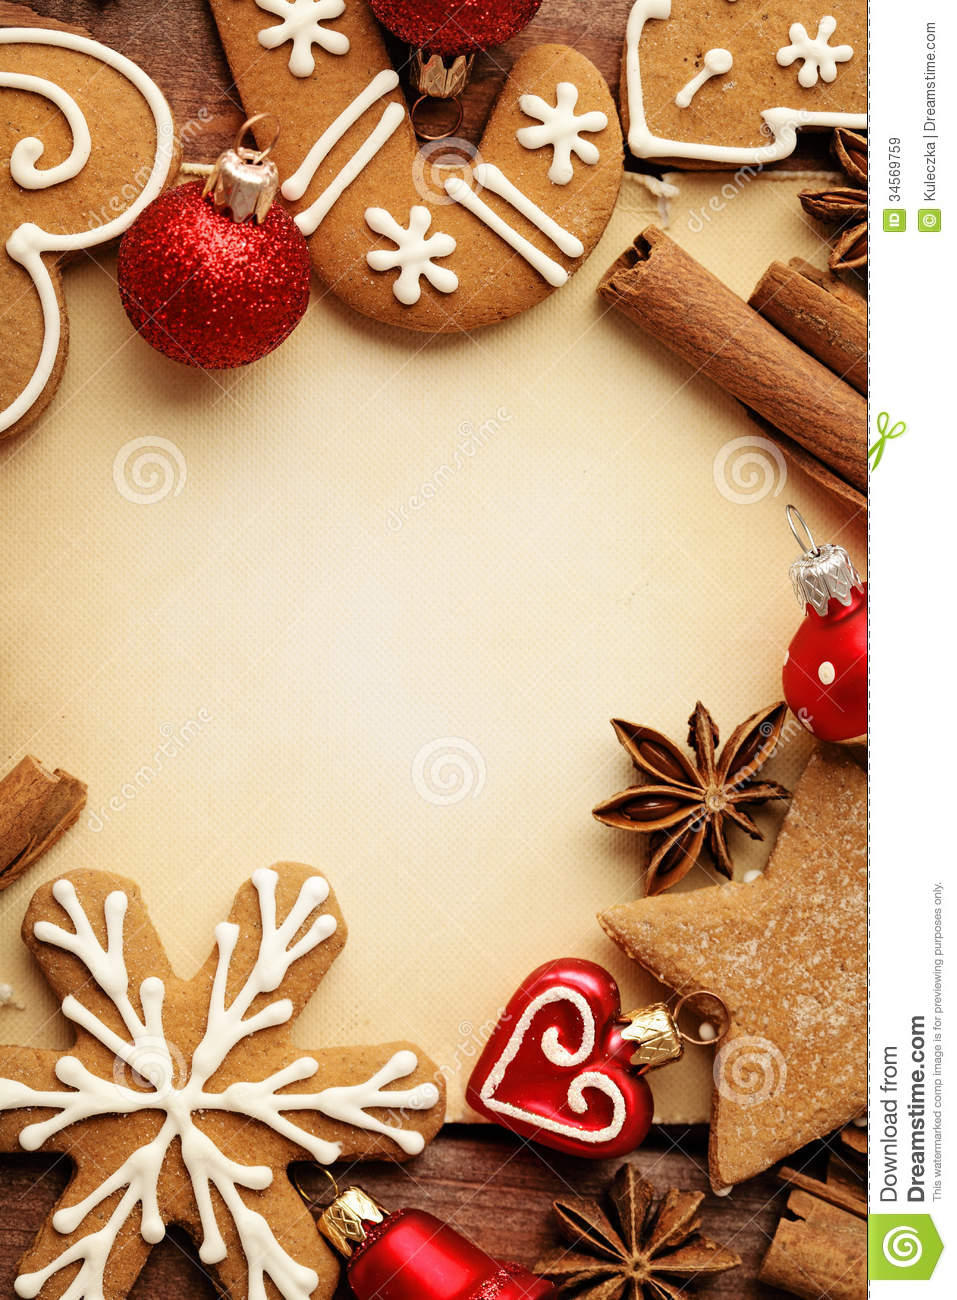 Christmas Cookies Stock Image Image Of Ornaments Celebration